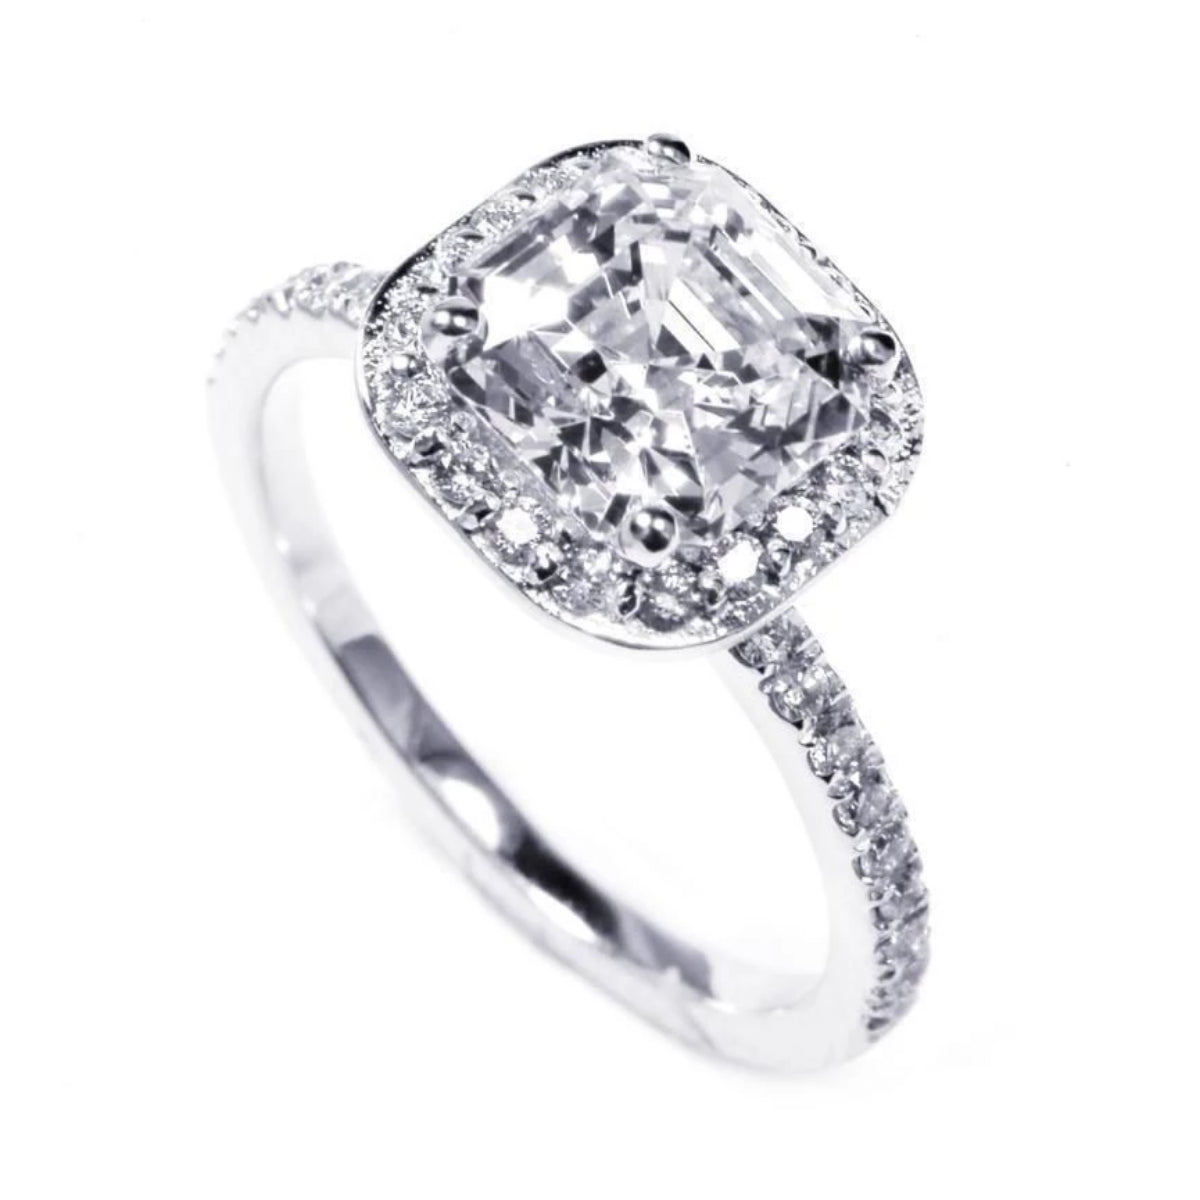 tapered rings pear graff shape side stones ring a baguette collections classic featuring diamond with